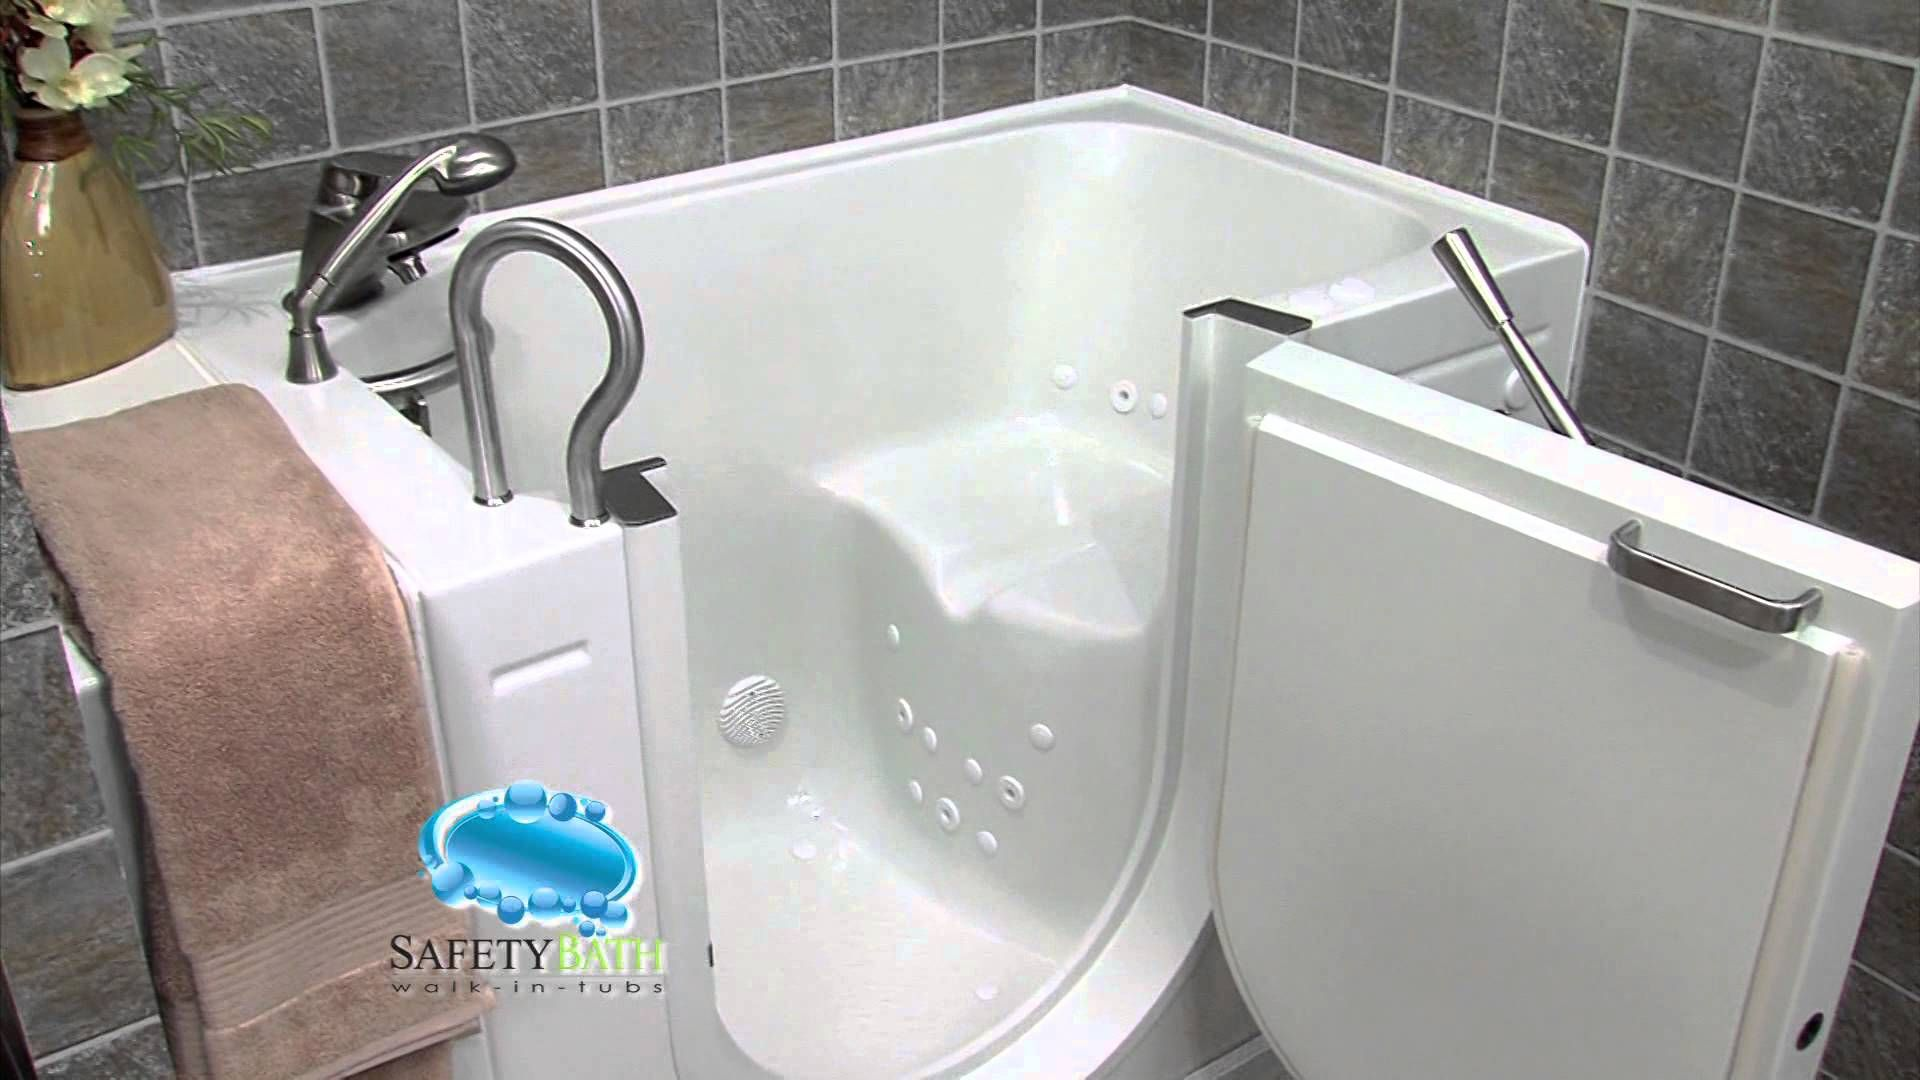 See Why Our Bathtubs Are The 1 Selling Walk In Tubs In North